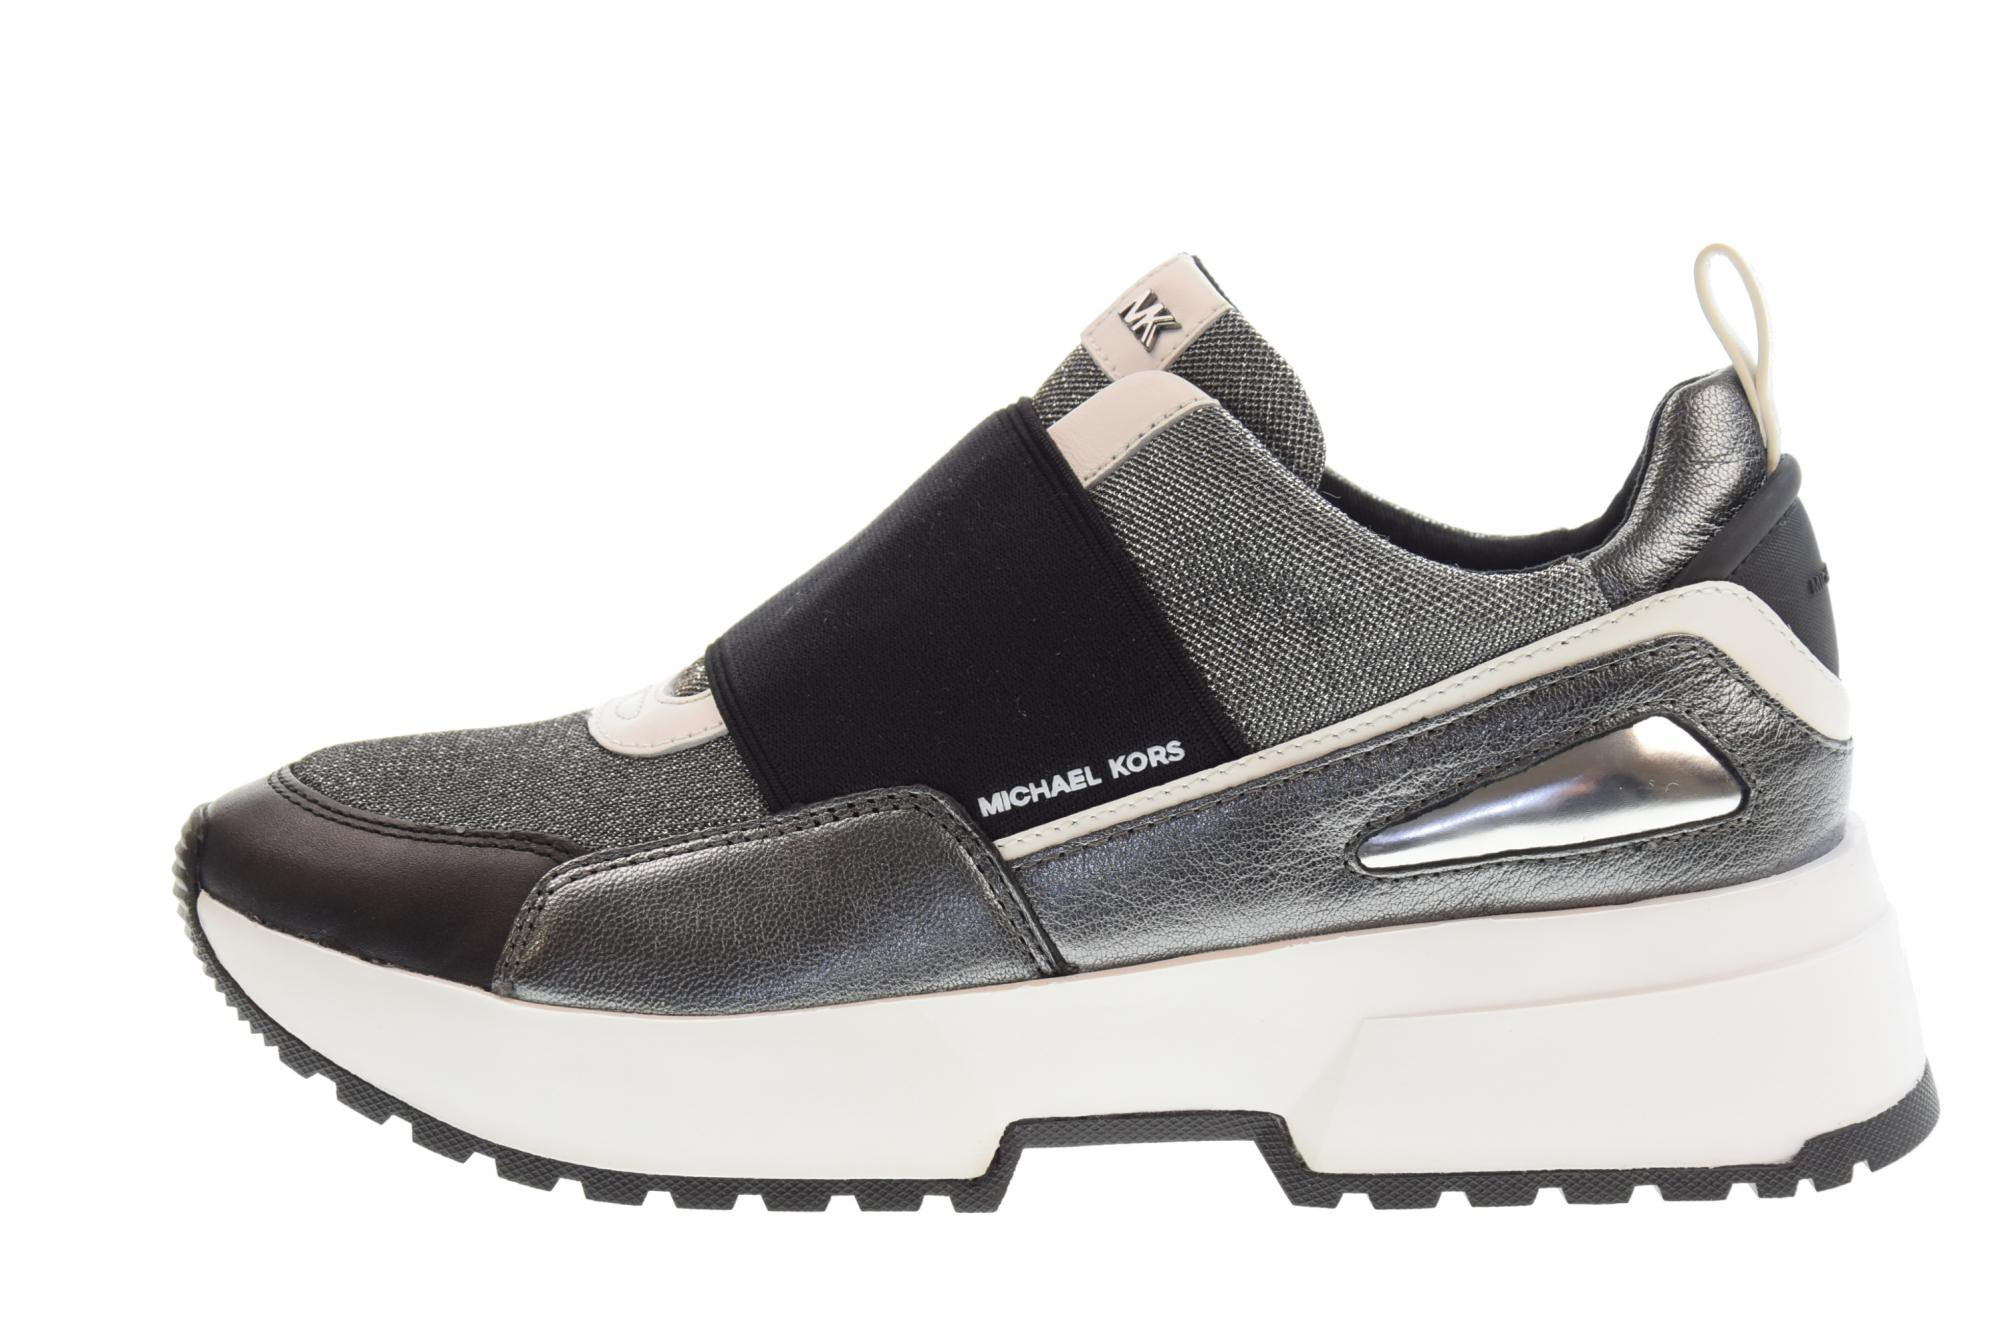 Details about Michael Kors P19us shoes woman low sneakers 43R9CSFP2D COSMO SLIP ON SILVER